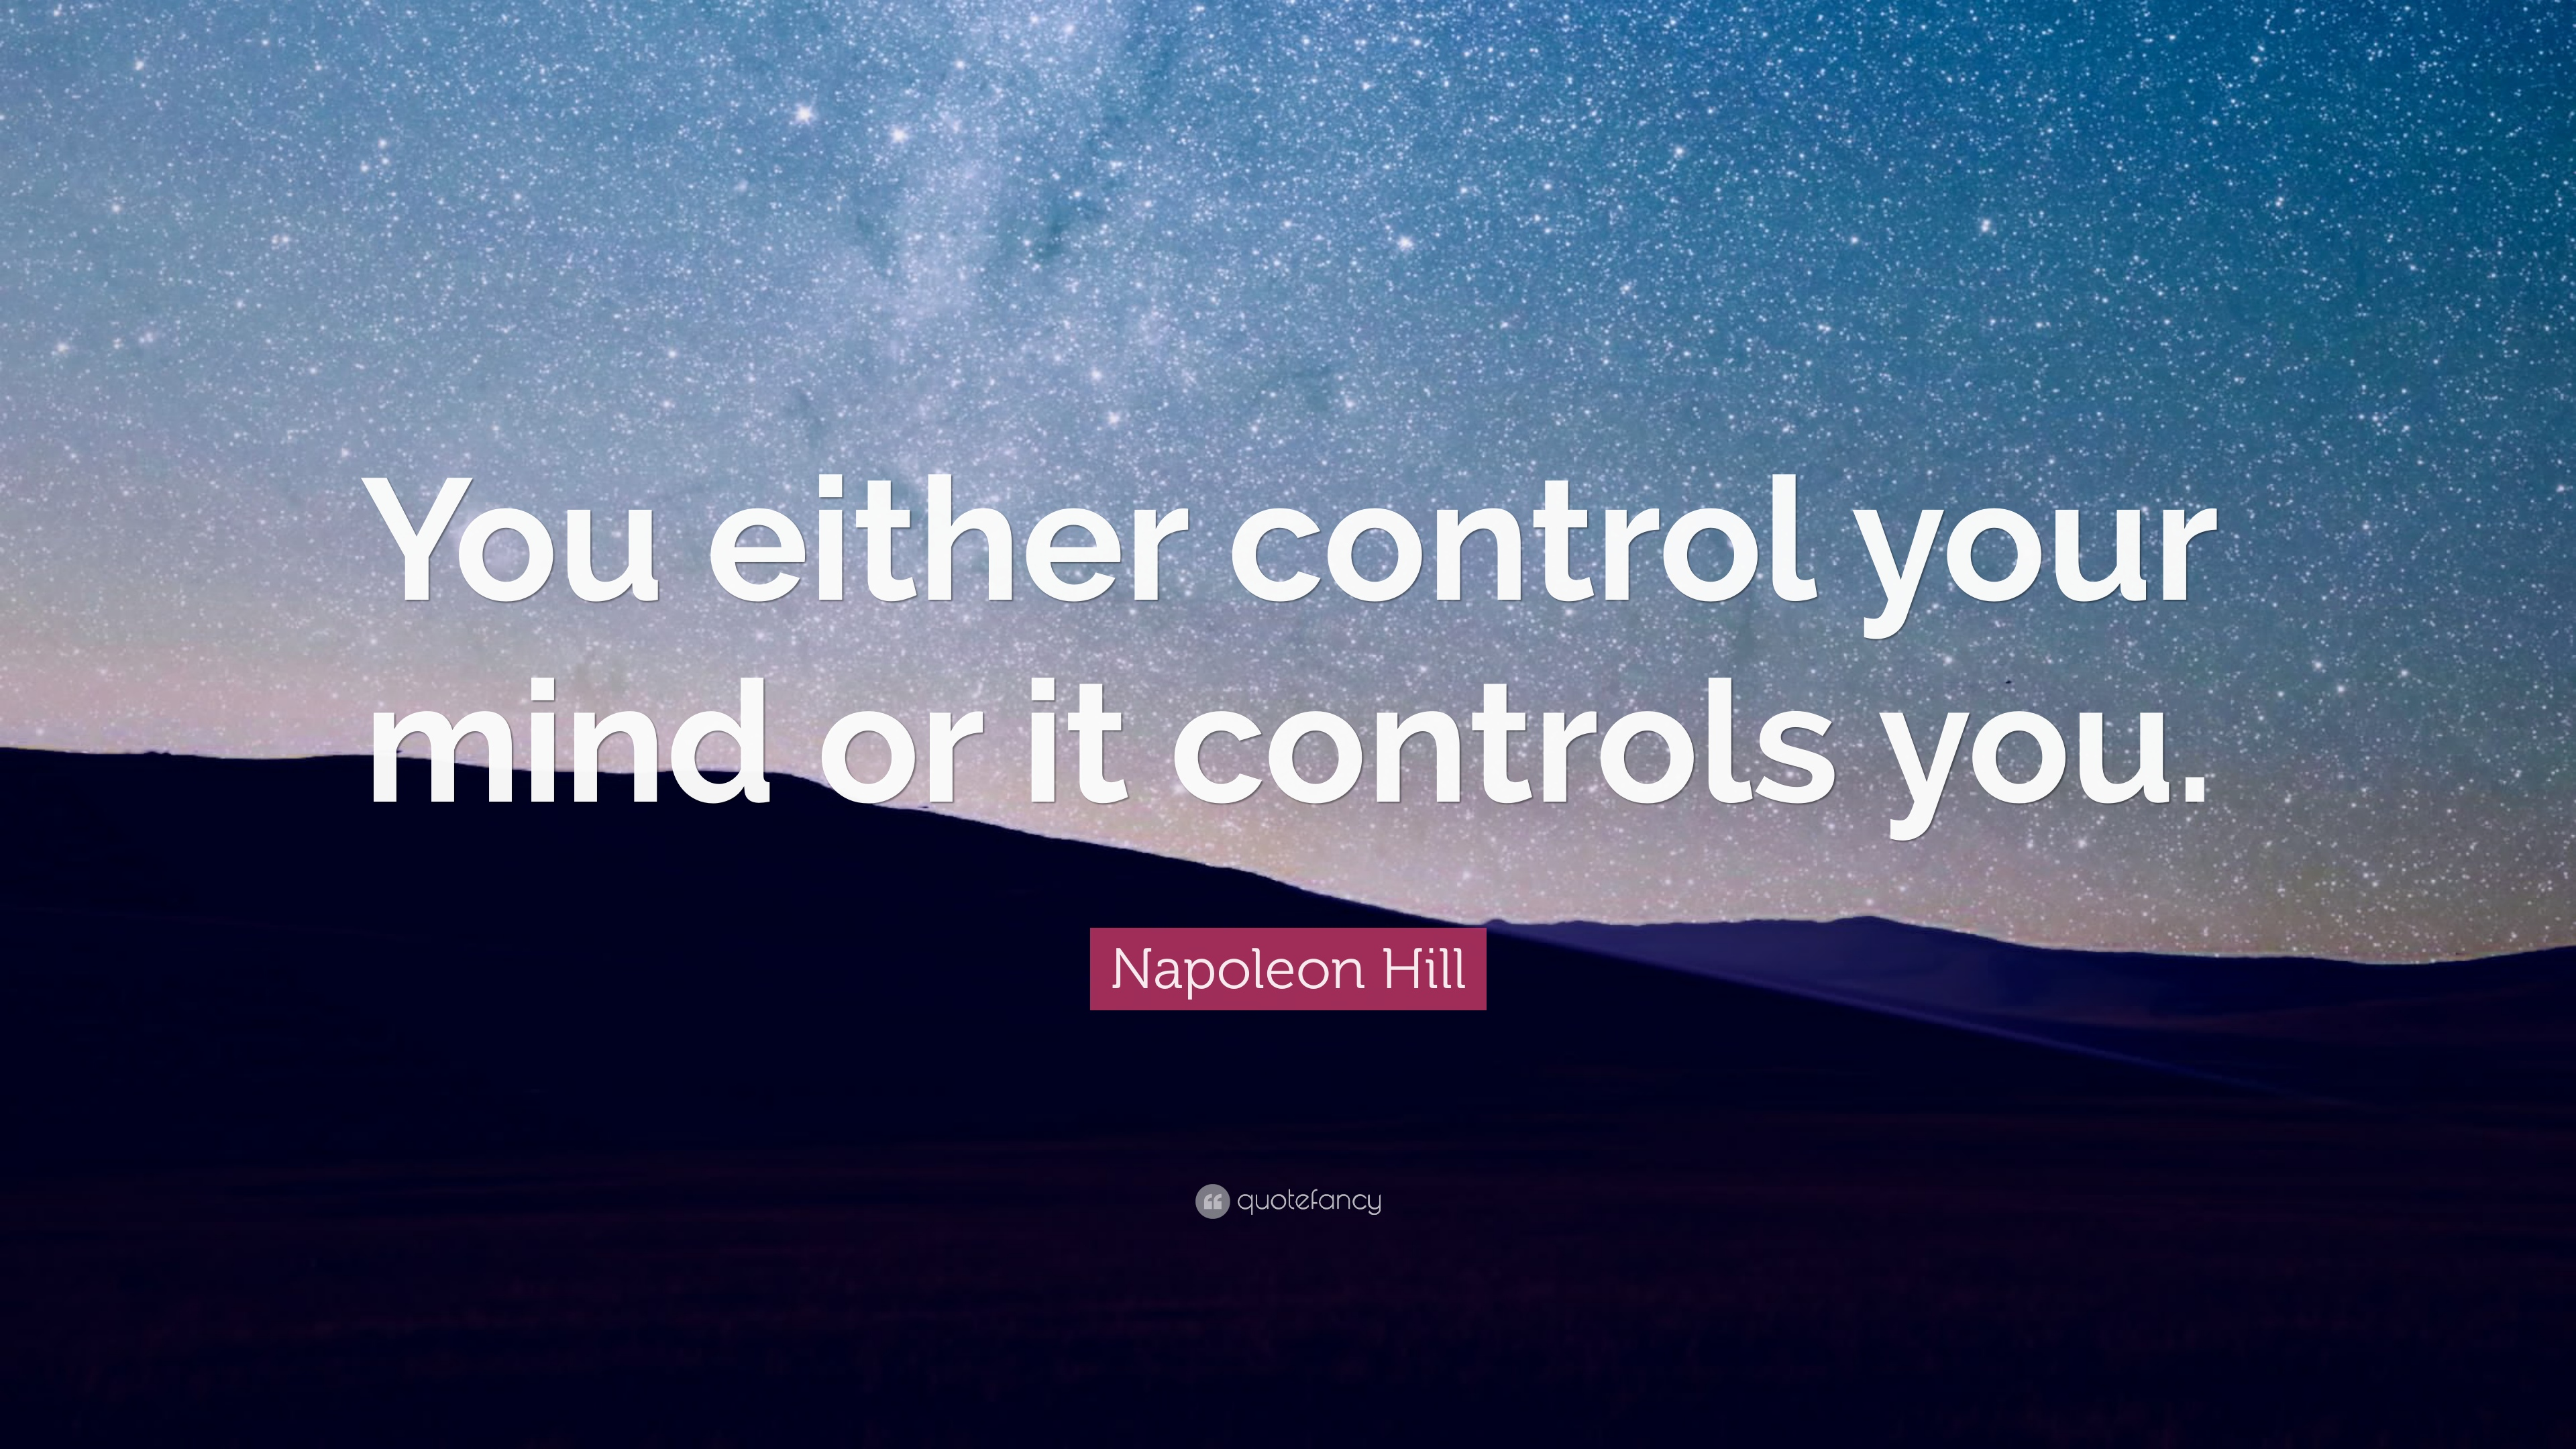 Dream Quotes Wallpaper 1080p Napoleon Hill Quote You Either Control Your Mind Or It